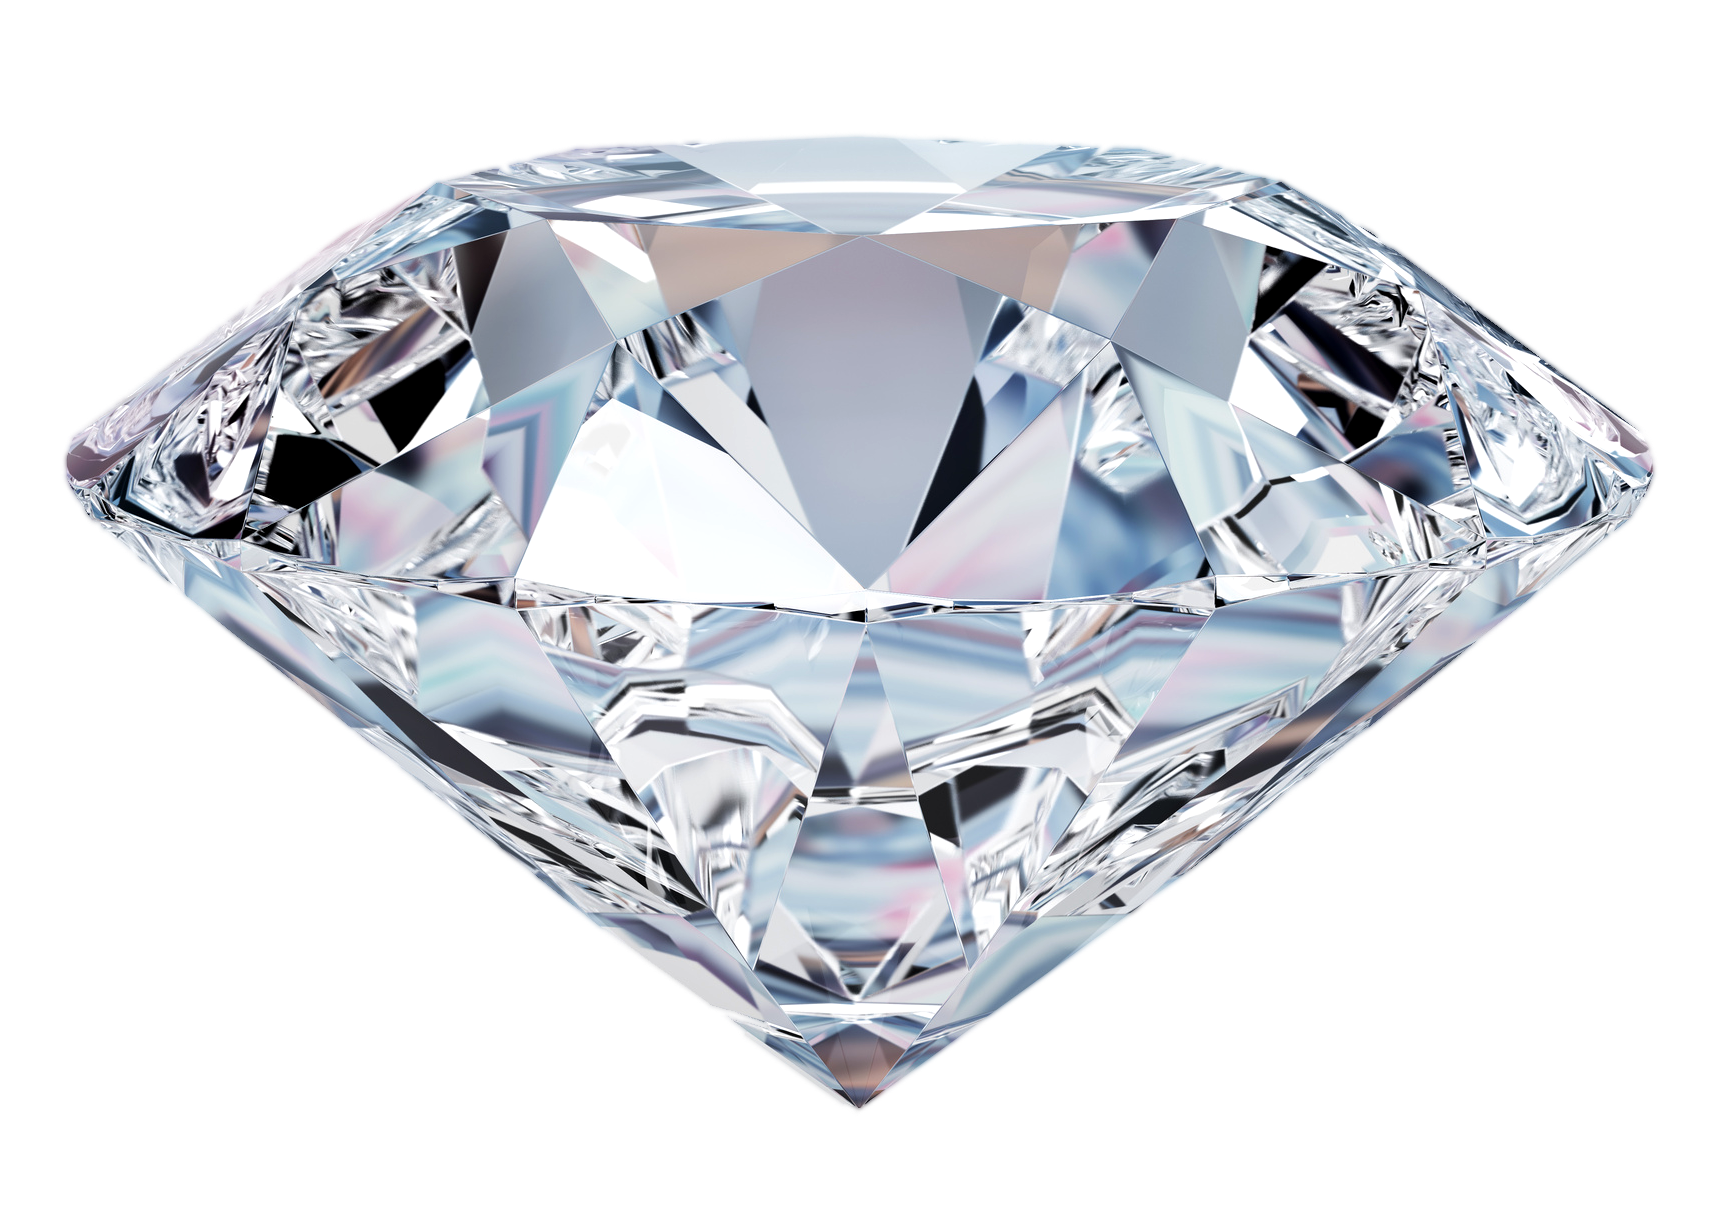 diamond-clipart-single-2.png